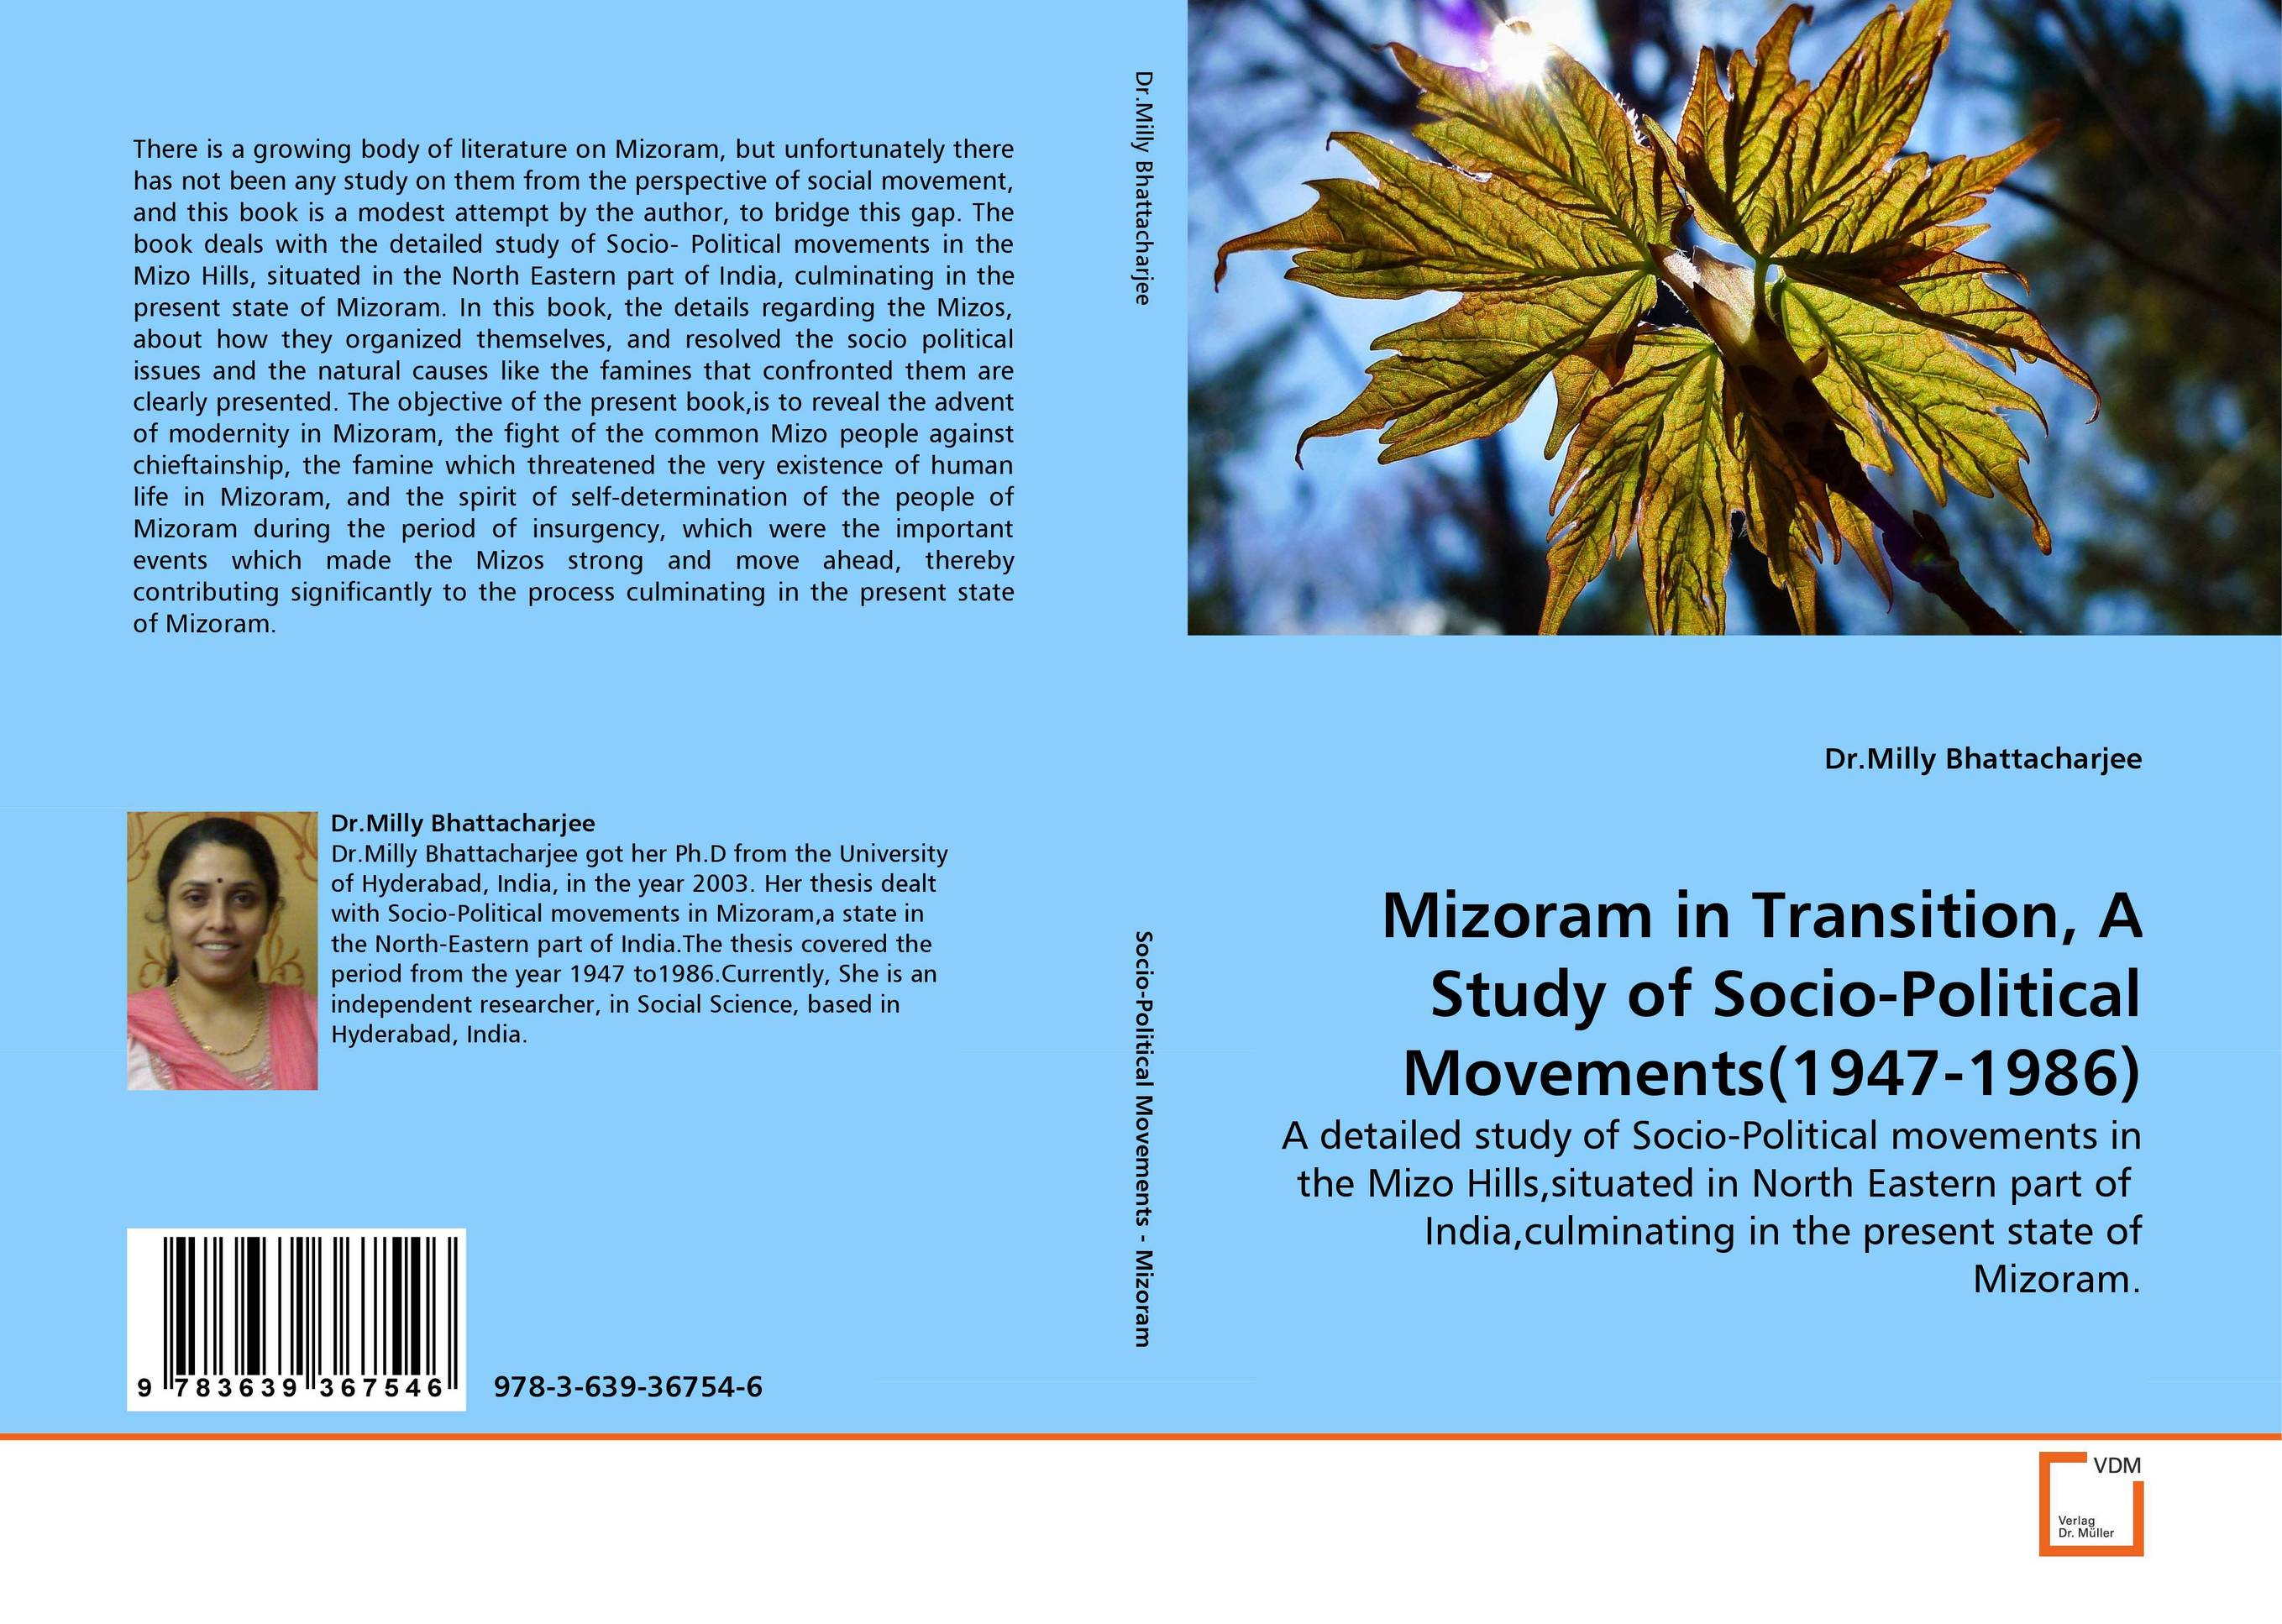 Mizoram in Transition, A Study of Socio-Political Movements(1947-1986) the failure of economic nationalism in slovenia s transition